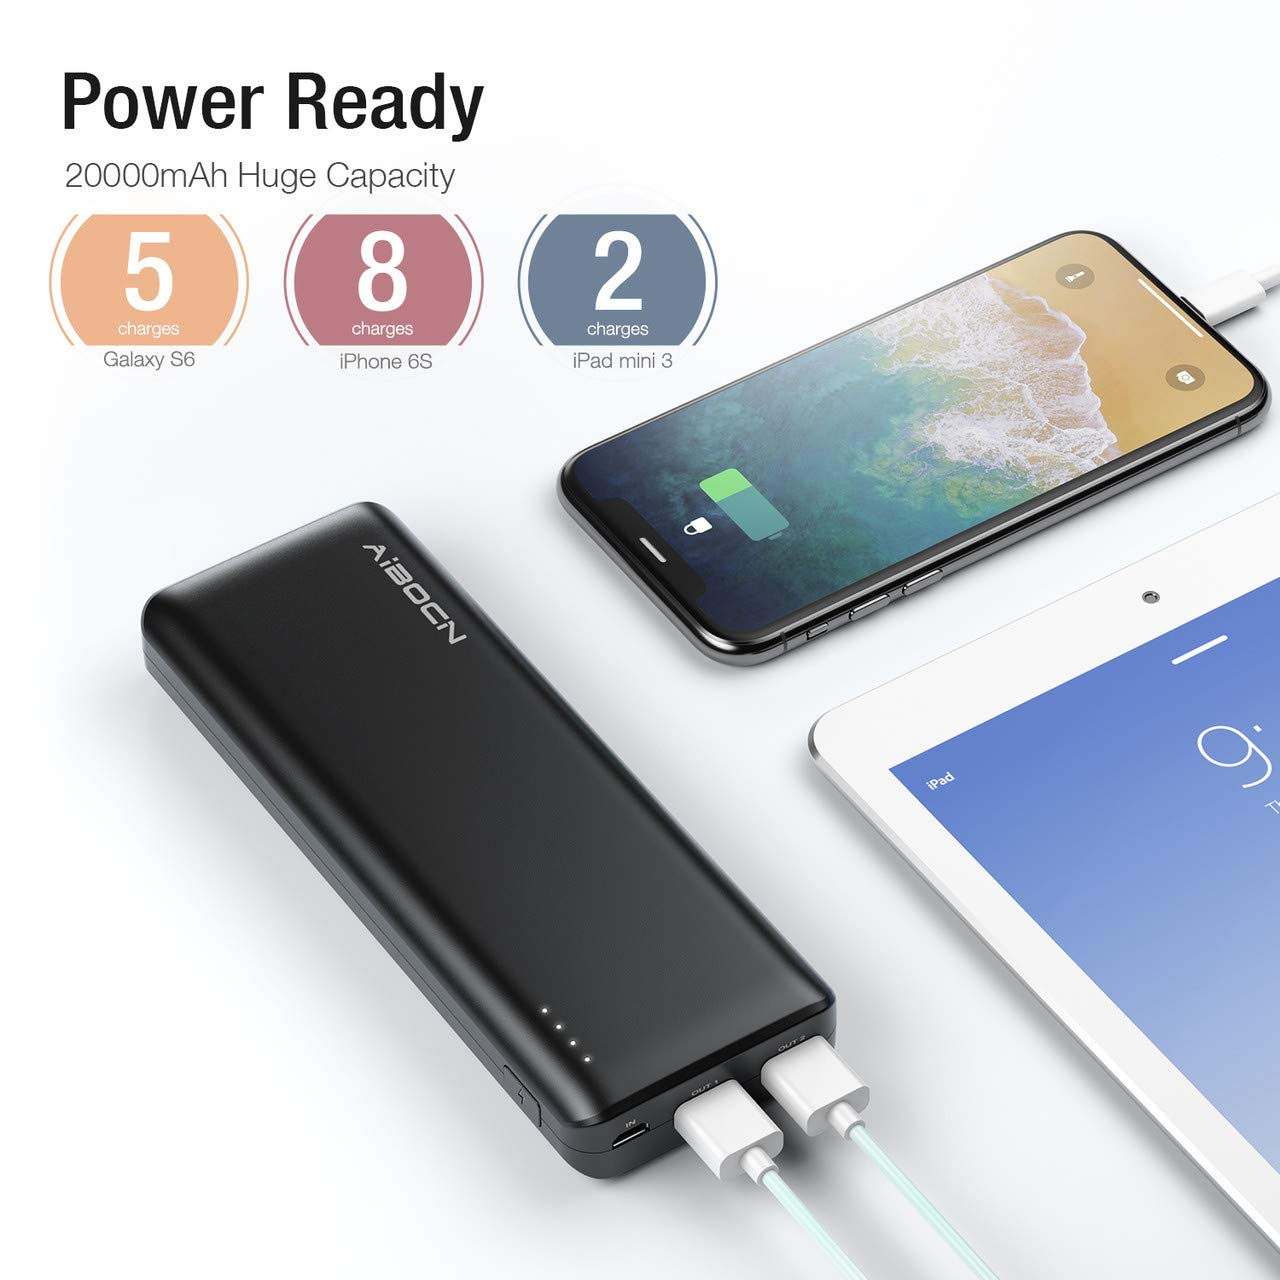 Aibocn Uranus 20000mAh Power Bank, Perfect Hand Feeling Portable Charger, High Capacity Compact External Battery Pack Fast Charging for iPhone, iPad, Samsung Galaxy, Android Phone, Tablet and More